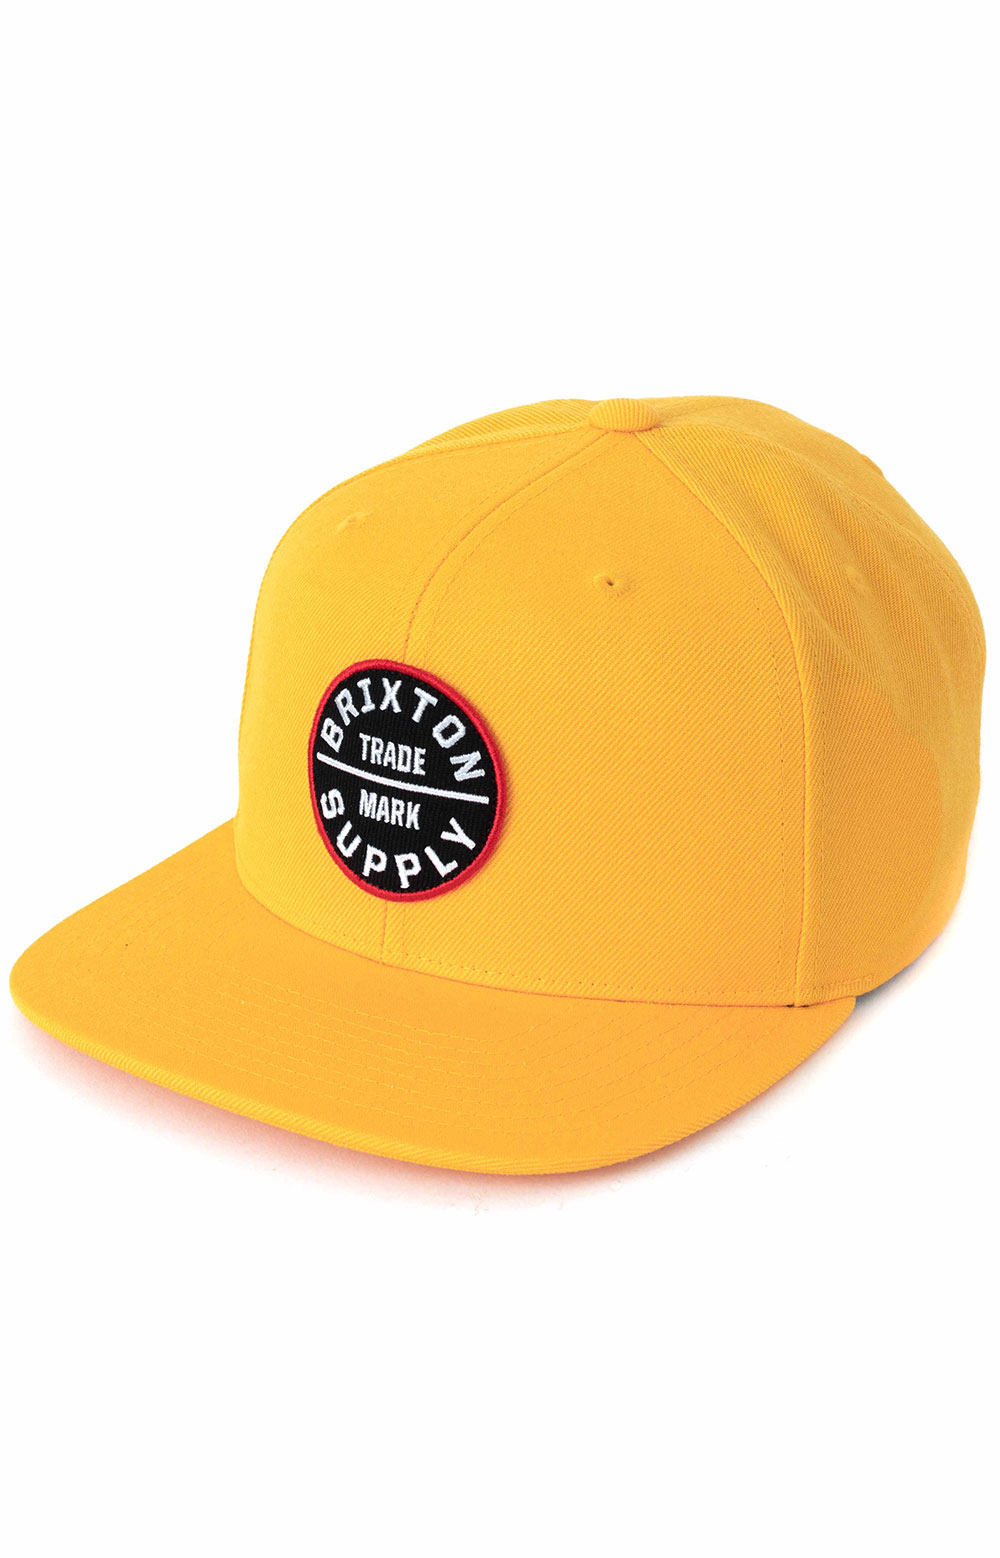 Oath III Snap-Back Hat - Nugget Gold